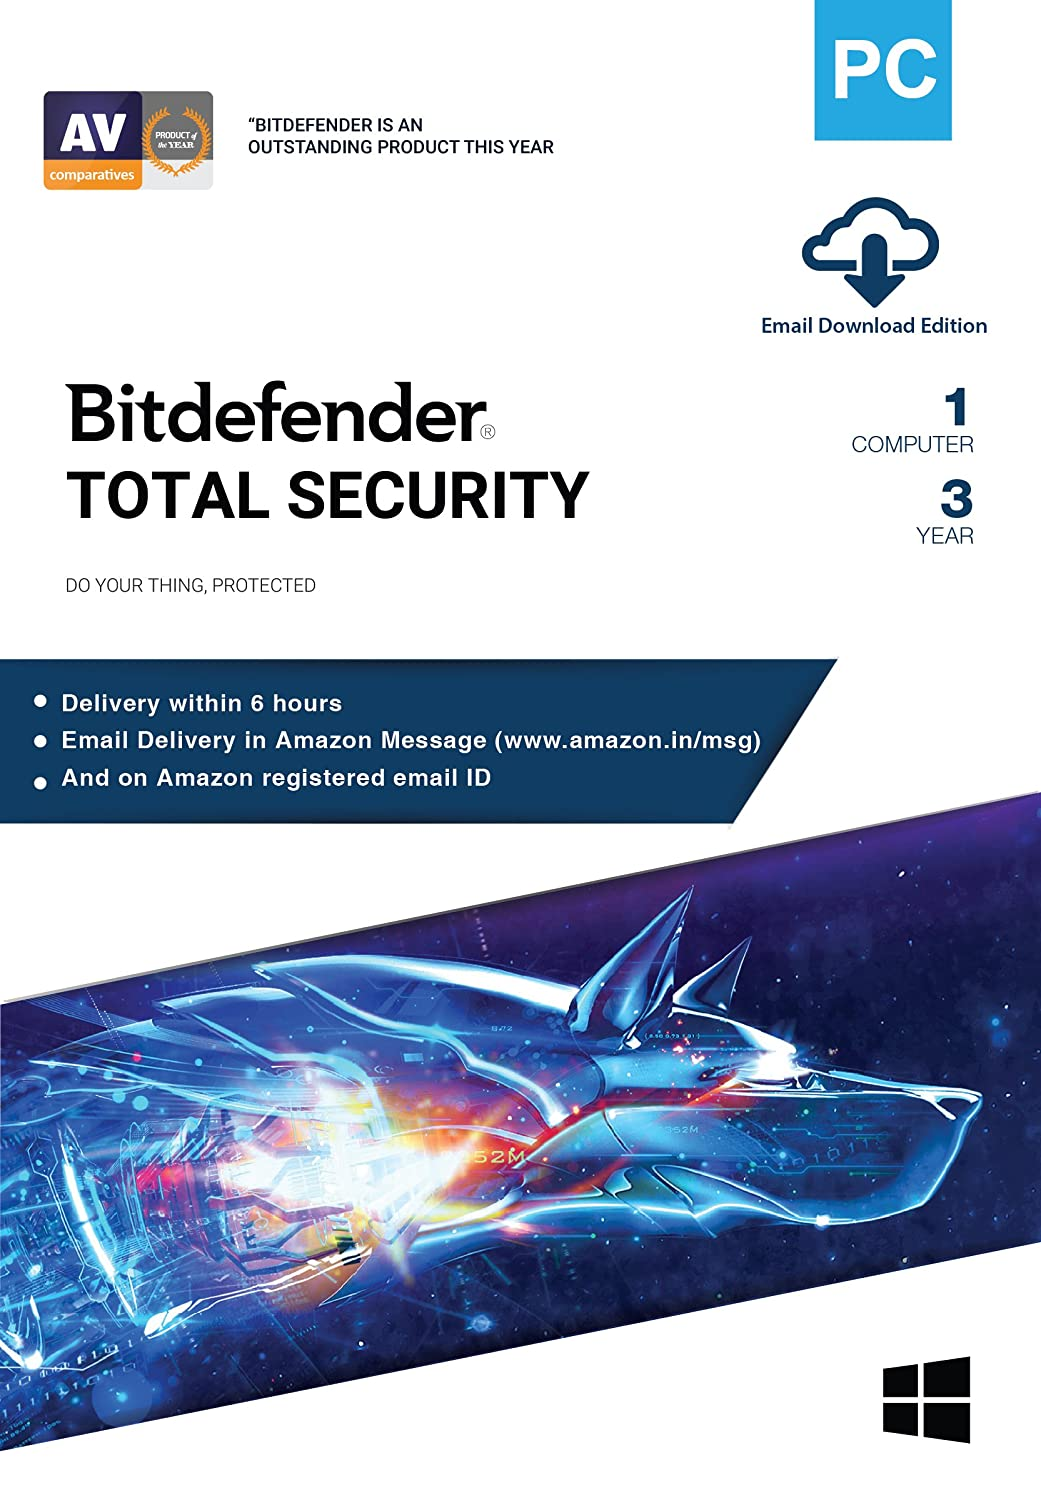 Bitdefender - 1 Computer,3 Years - Total Security | Windows | Latest Version | Email $9.09 Coupon